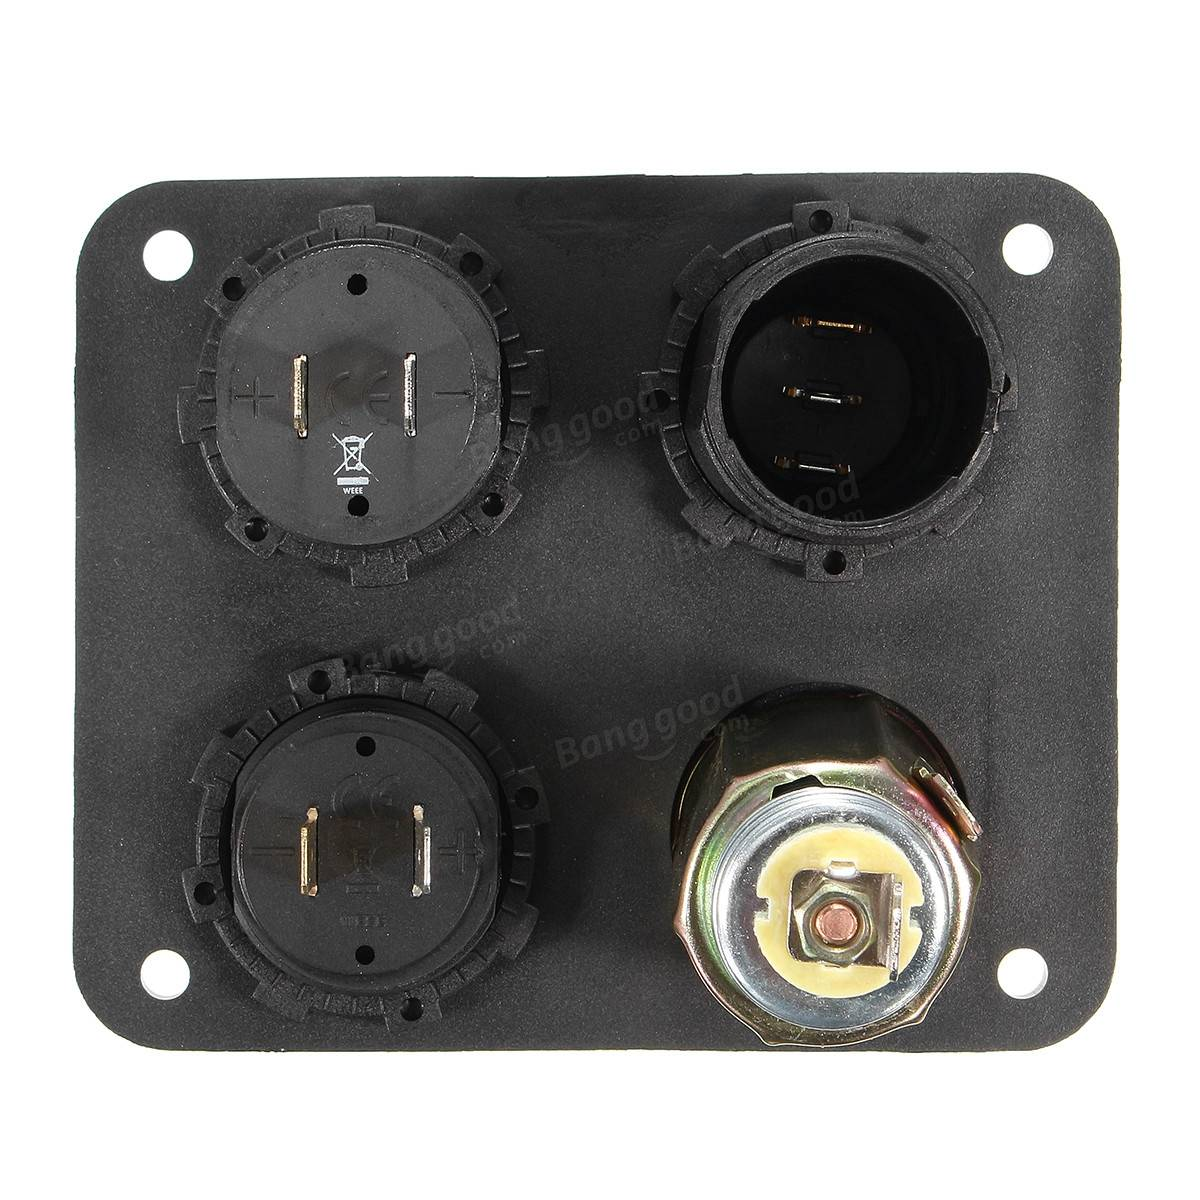 fb825a02 6711 4959 87d8 af0d23700f75 4 hole panel switch marine boat auto rv 12v power socket volt  at suagrazia.org